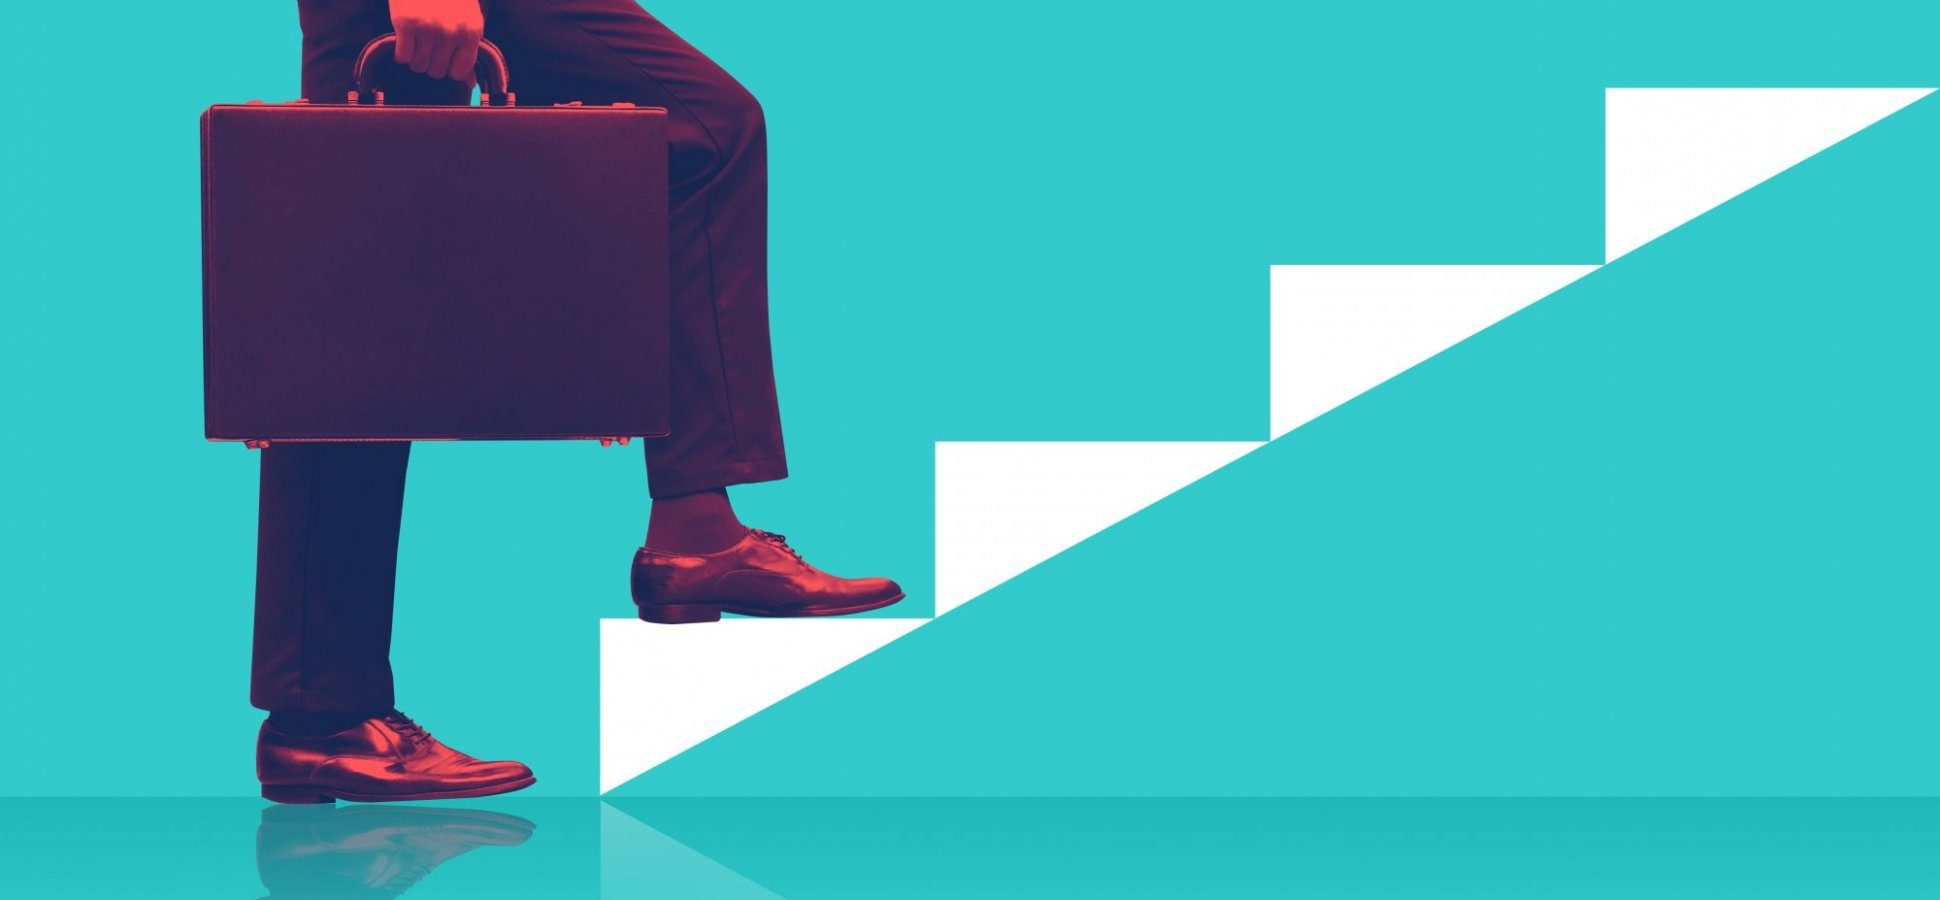 To Grow, Shift From Focusing on Employee Performance to Employee Growth